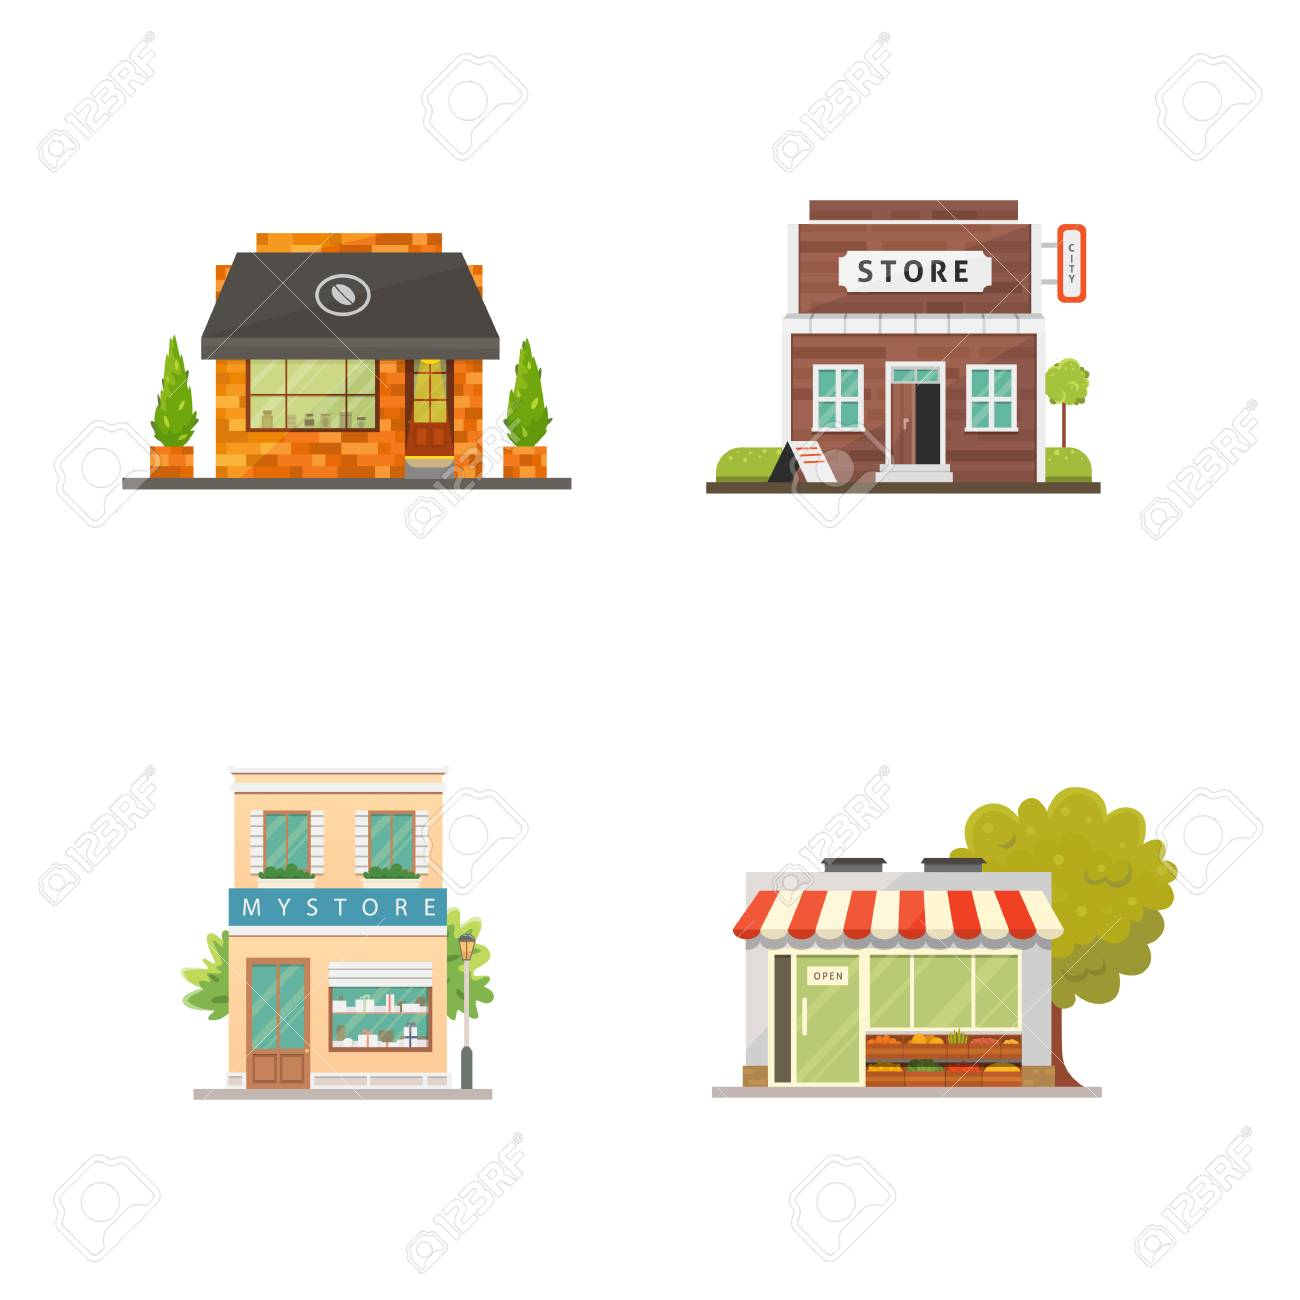 Shop Store Buildings Vector Illustrations Set Market Exterior Royalty Free Cliparts Vectors And Stock Illustration Image 115859159